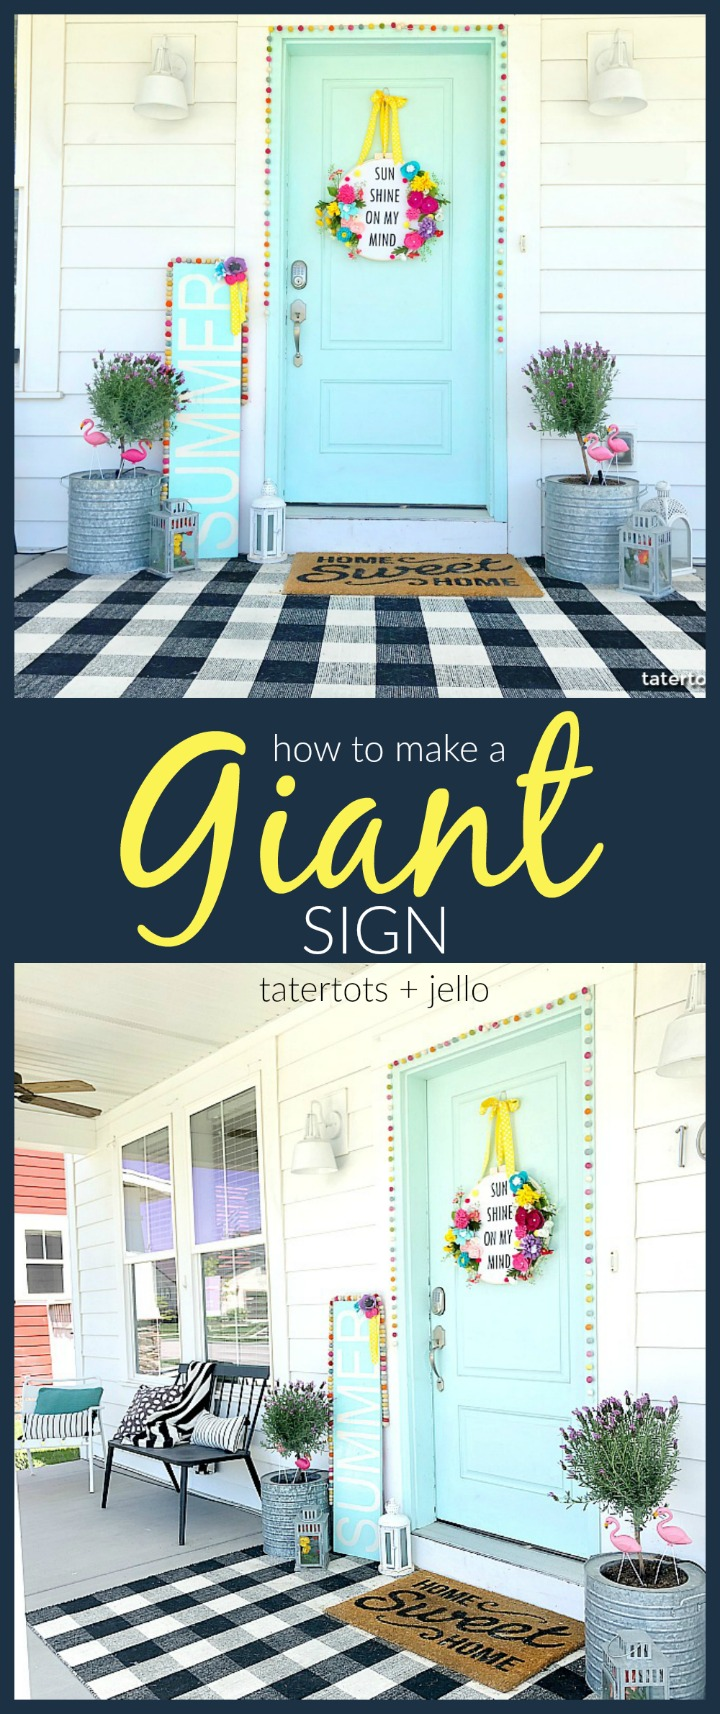 how to make a giant sign - it's easy, inexpensive and makes a statement!